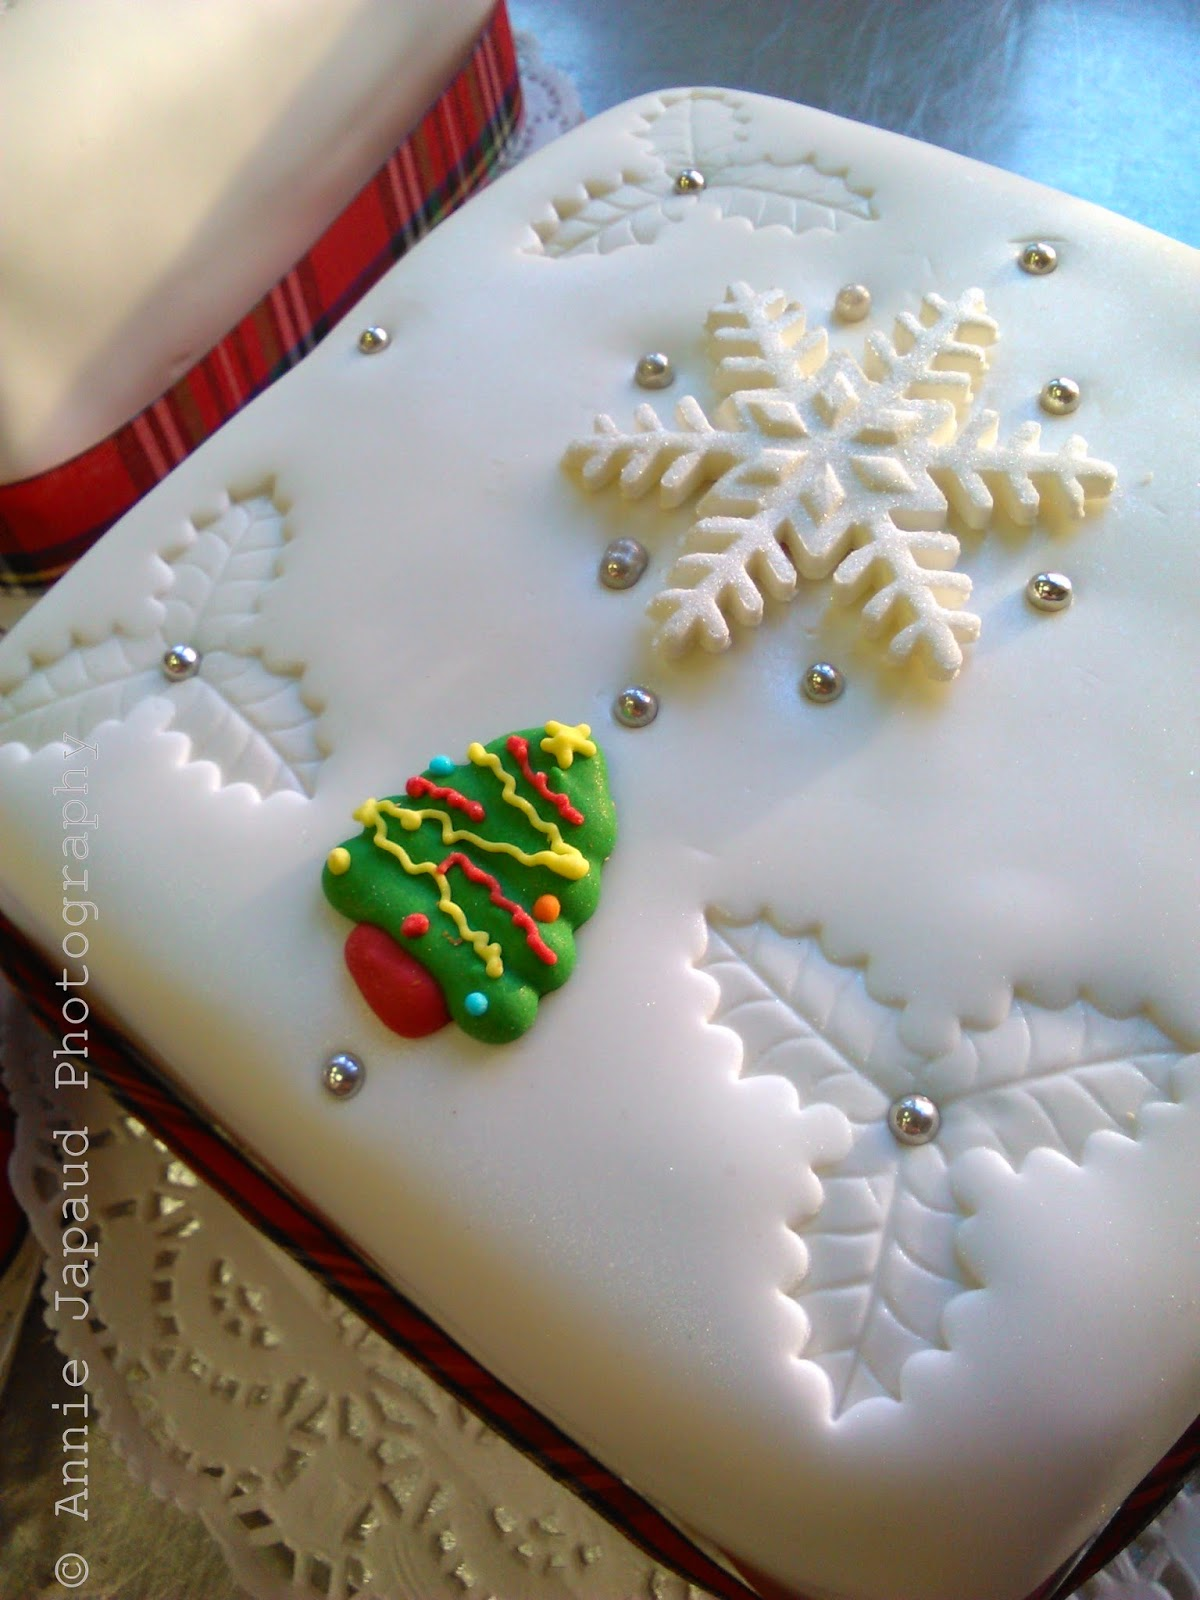 image of a Christmas cake